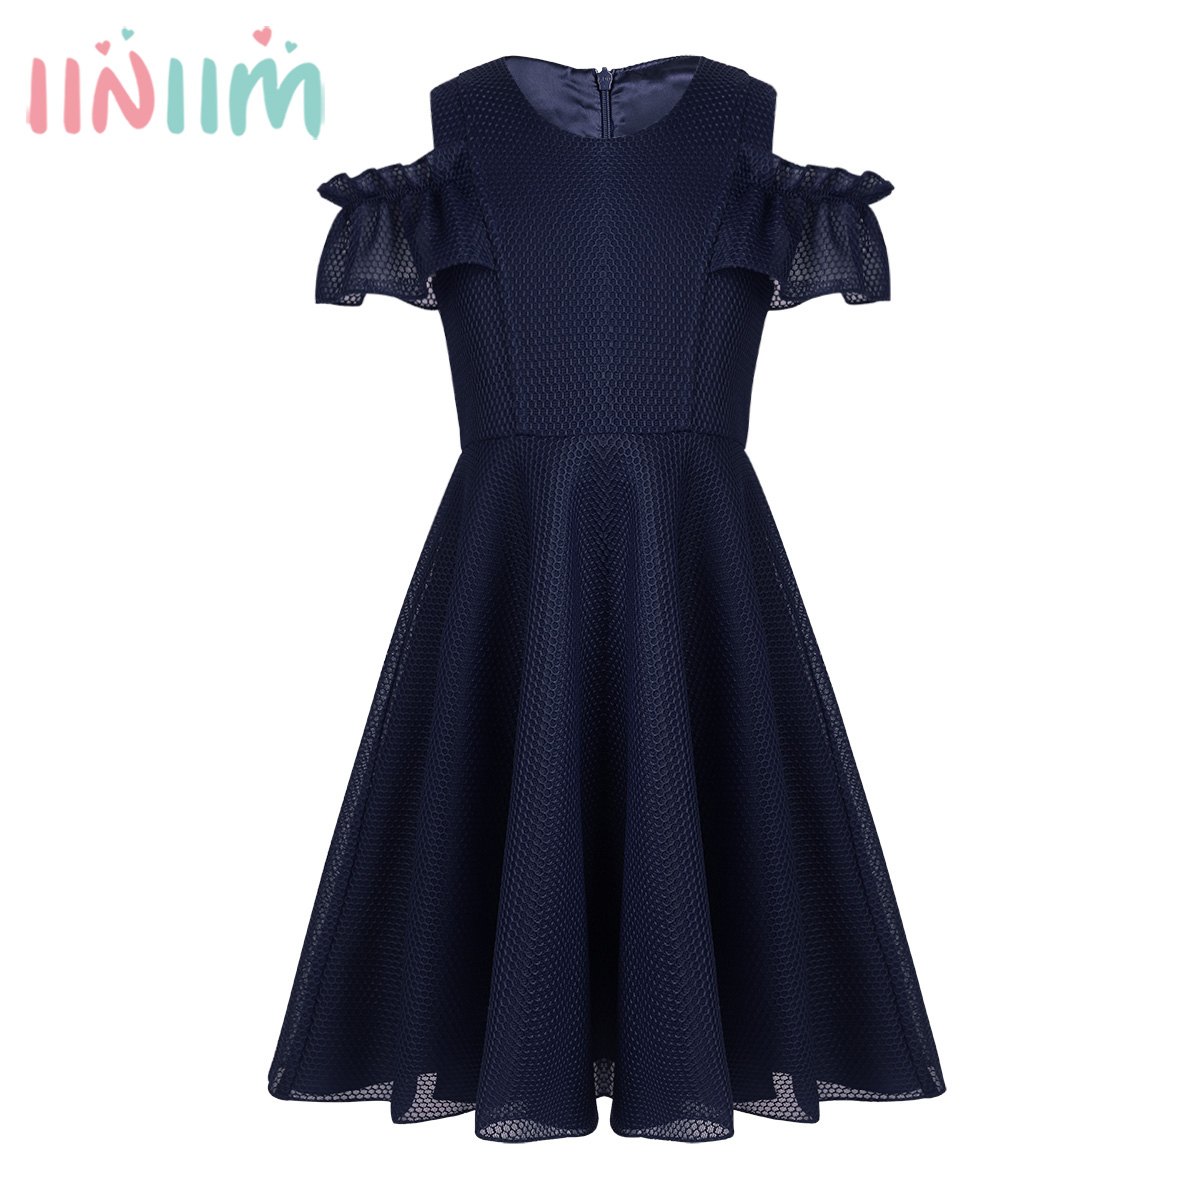 iiniim Teen Girls Lattice Mesh Ruffled Sleeves Cold Shoulder Dress for Birthday Party Summer Flower Dress for Weeding Prom Dress new 7 inch tablet capacitive touch screen replacement for wj1588 fpc v2 0 digitizer external screen sensor free shipping